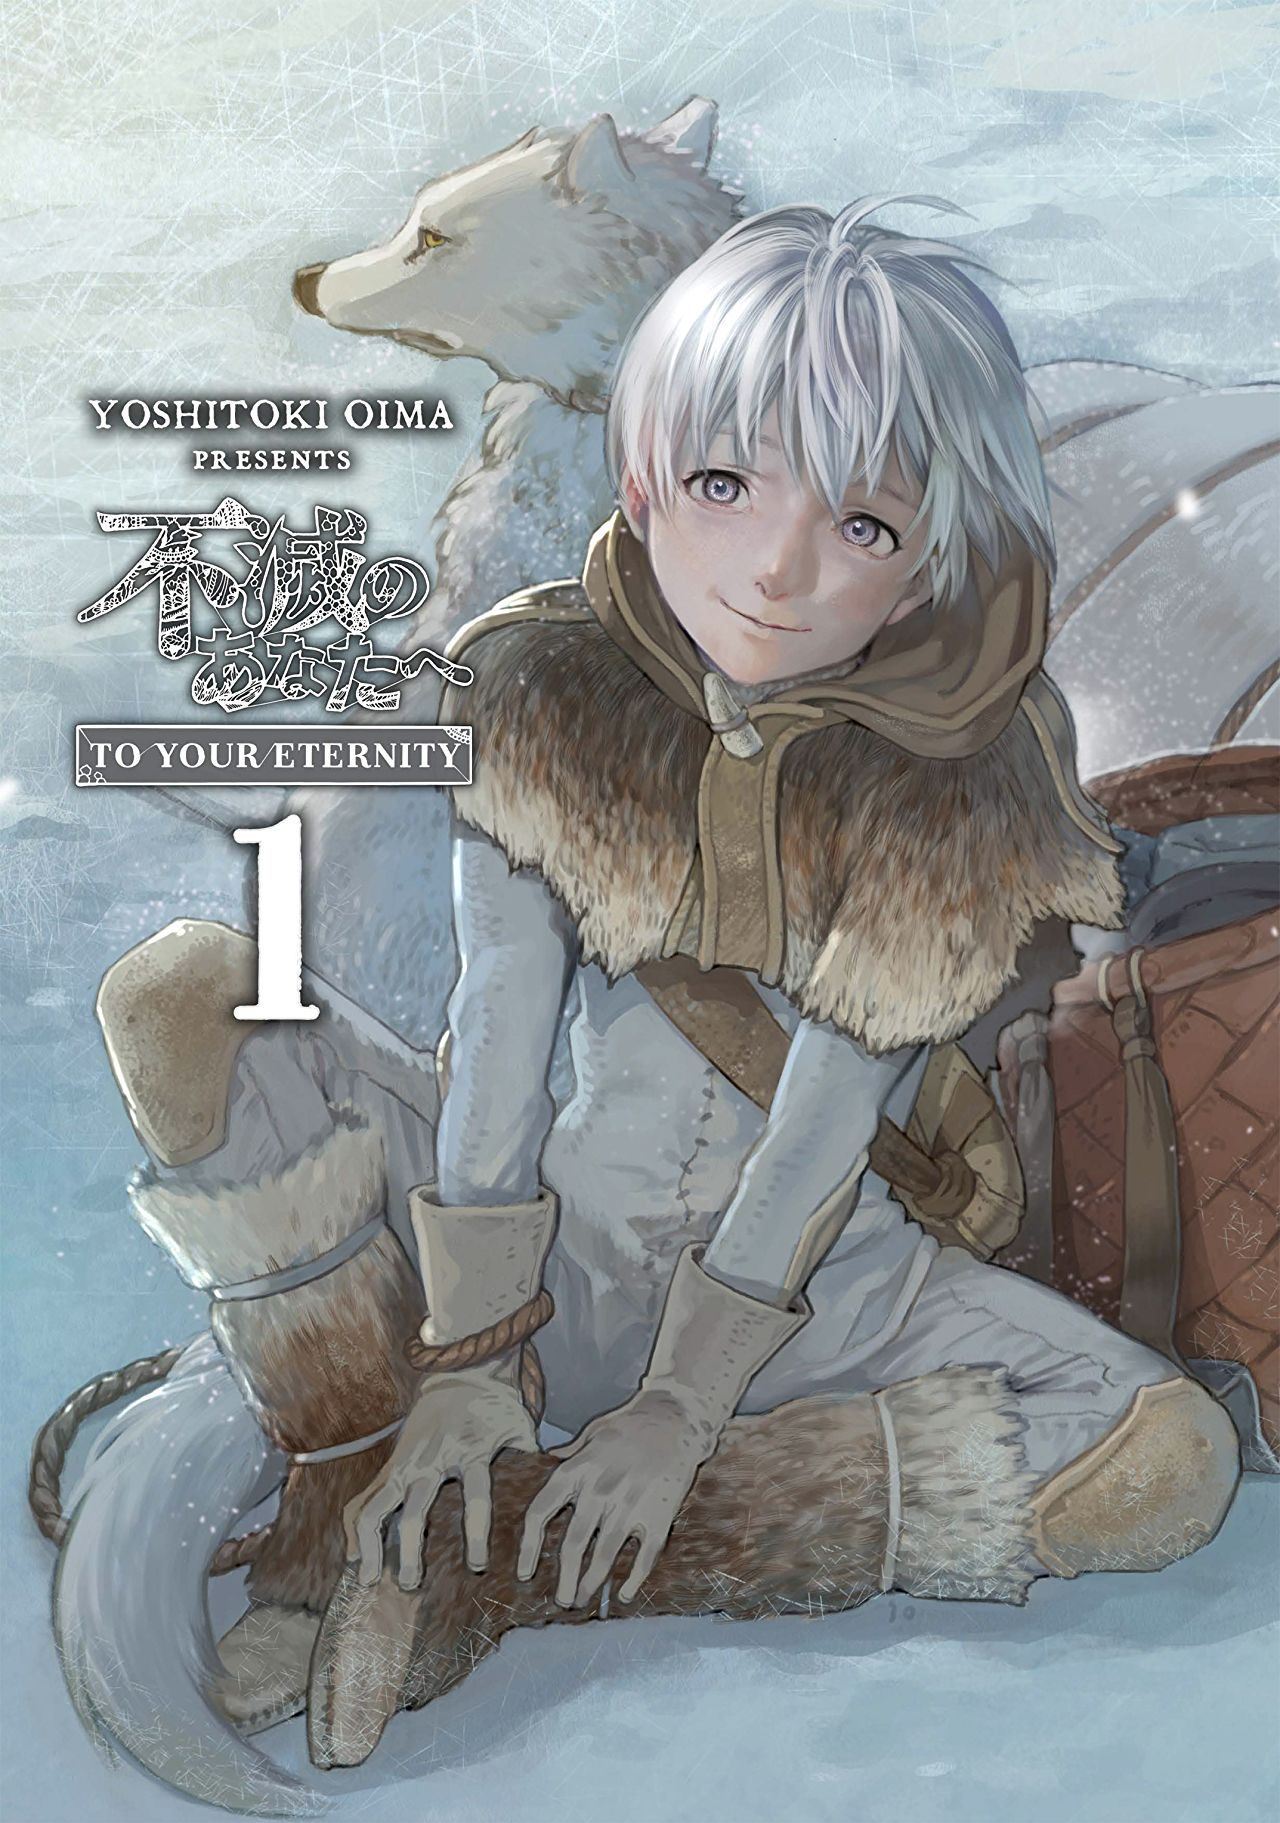 To Your Eternity Vol. 1 review: mythical and thought provoking